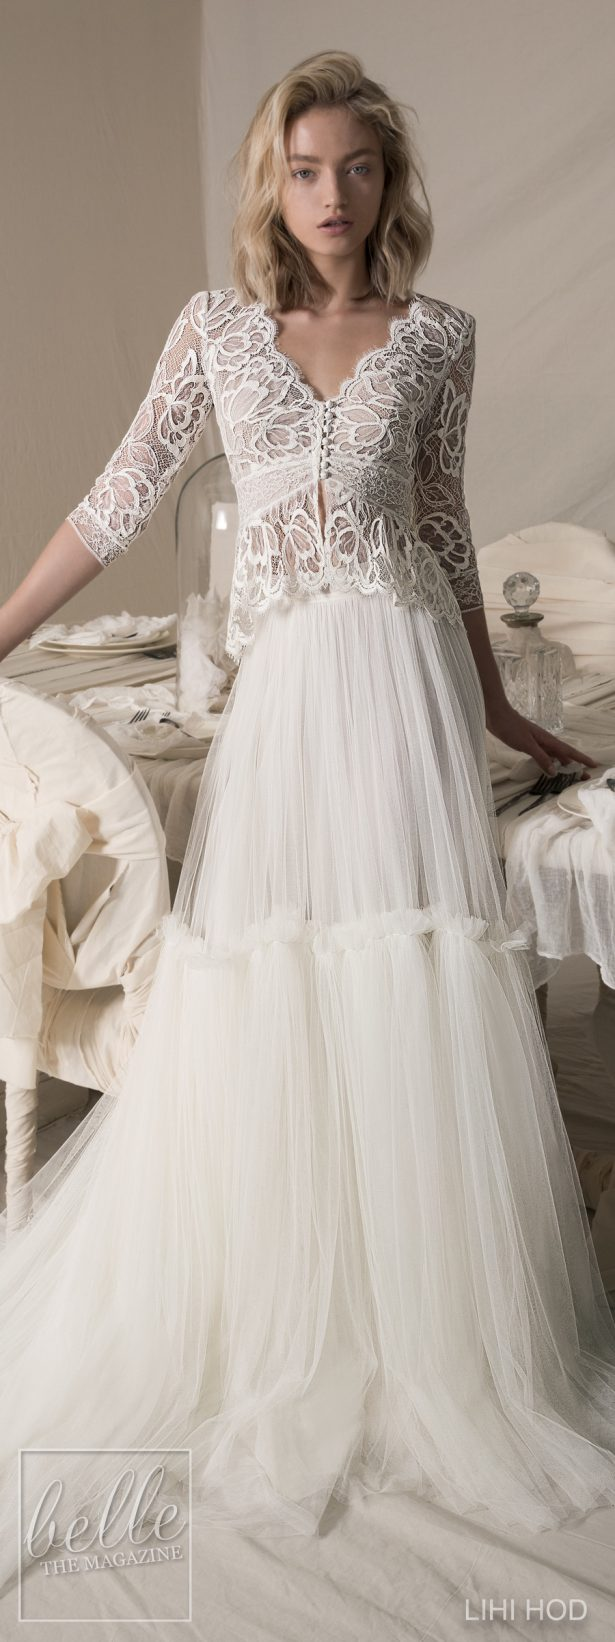 Wedding Dresses By Lihi Hod Fall 2018 Couture Bridal